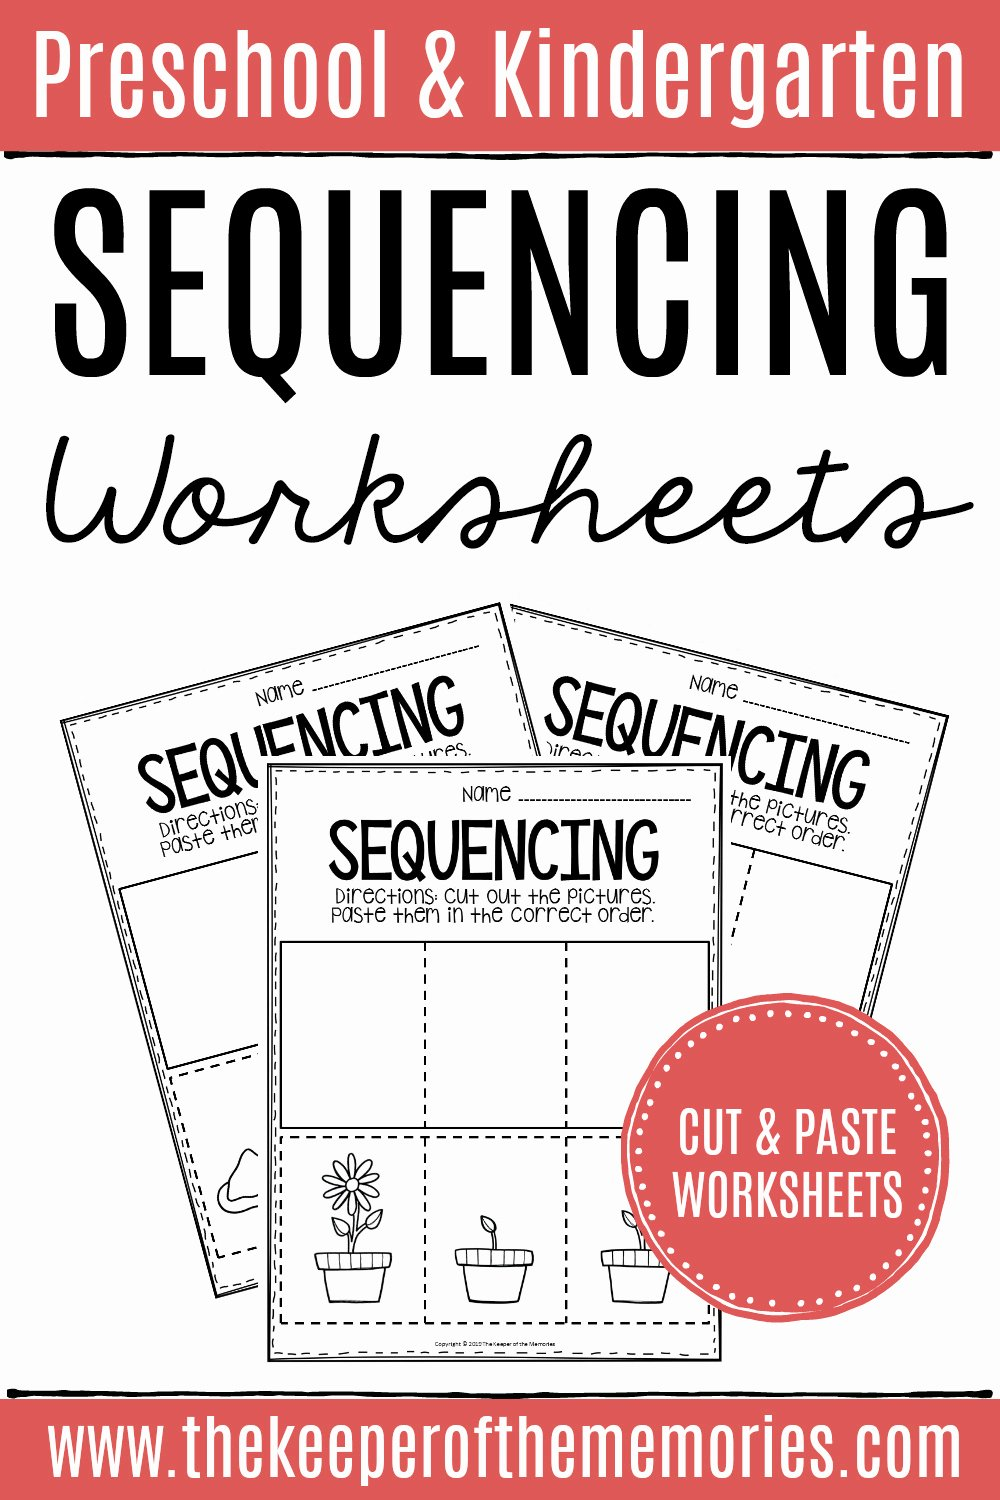 Cut and Paste Sequencing Worksheets Free 3 Step Sequencing Worksheets the Keeper Of the Memories